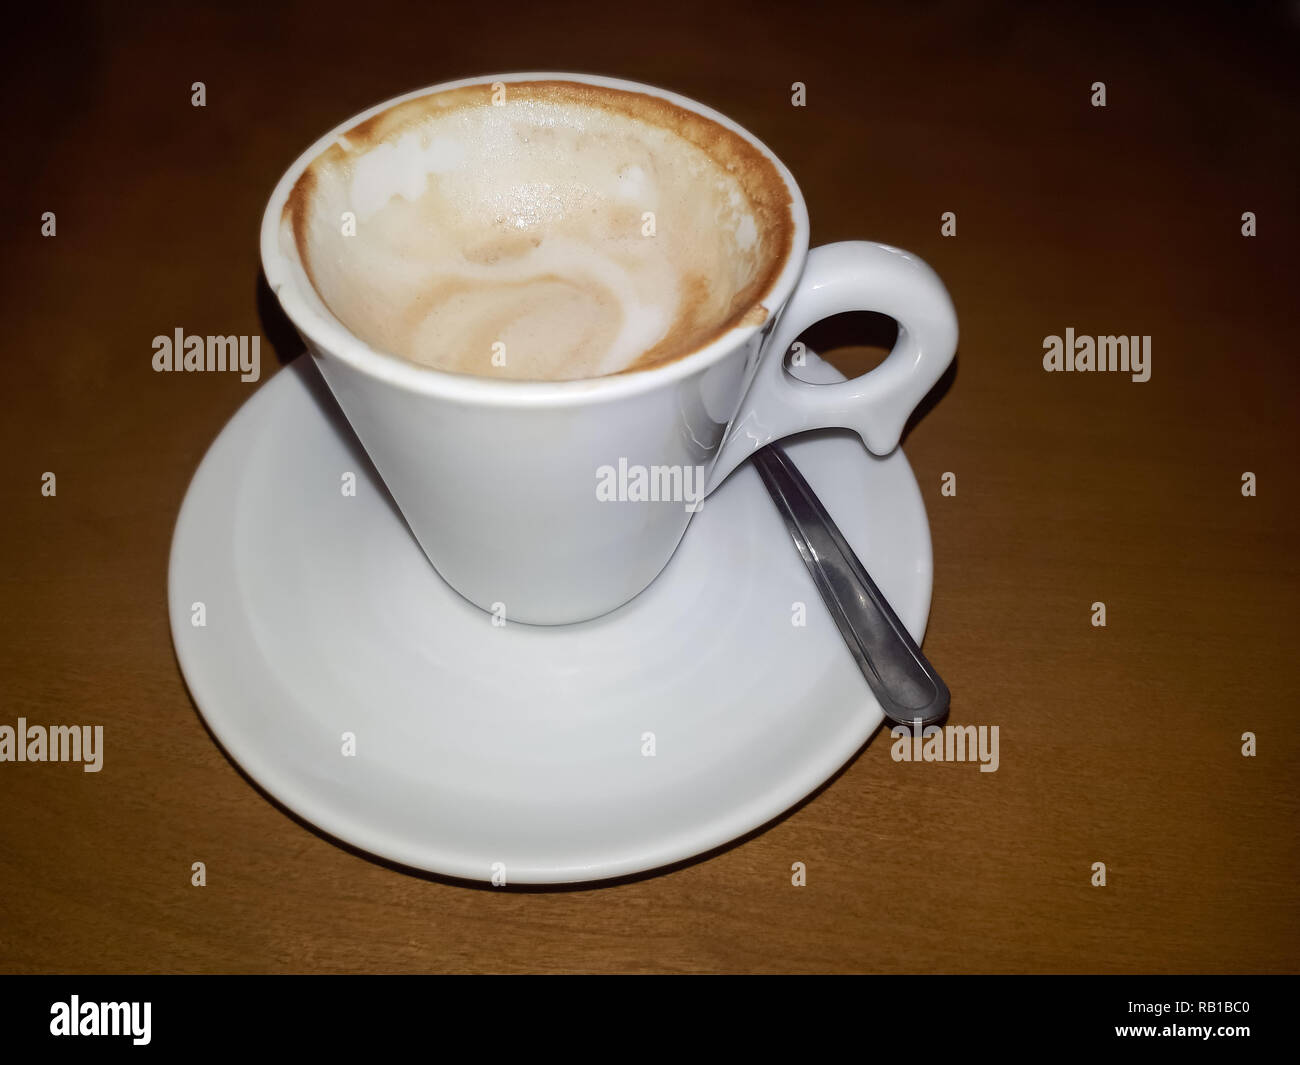 A white and fulfilled cup of coffee over a saucer with a teaspoon beside it and a darken woody background - Stock Image